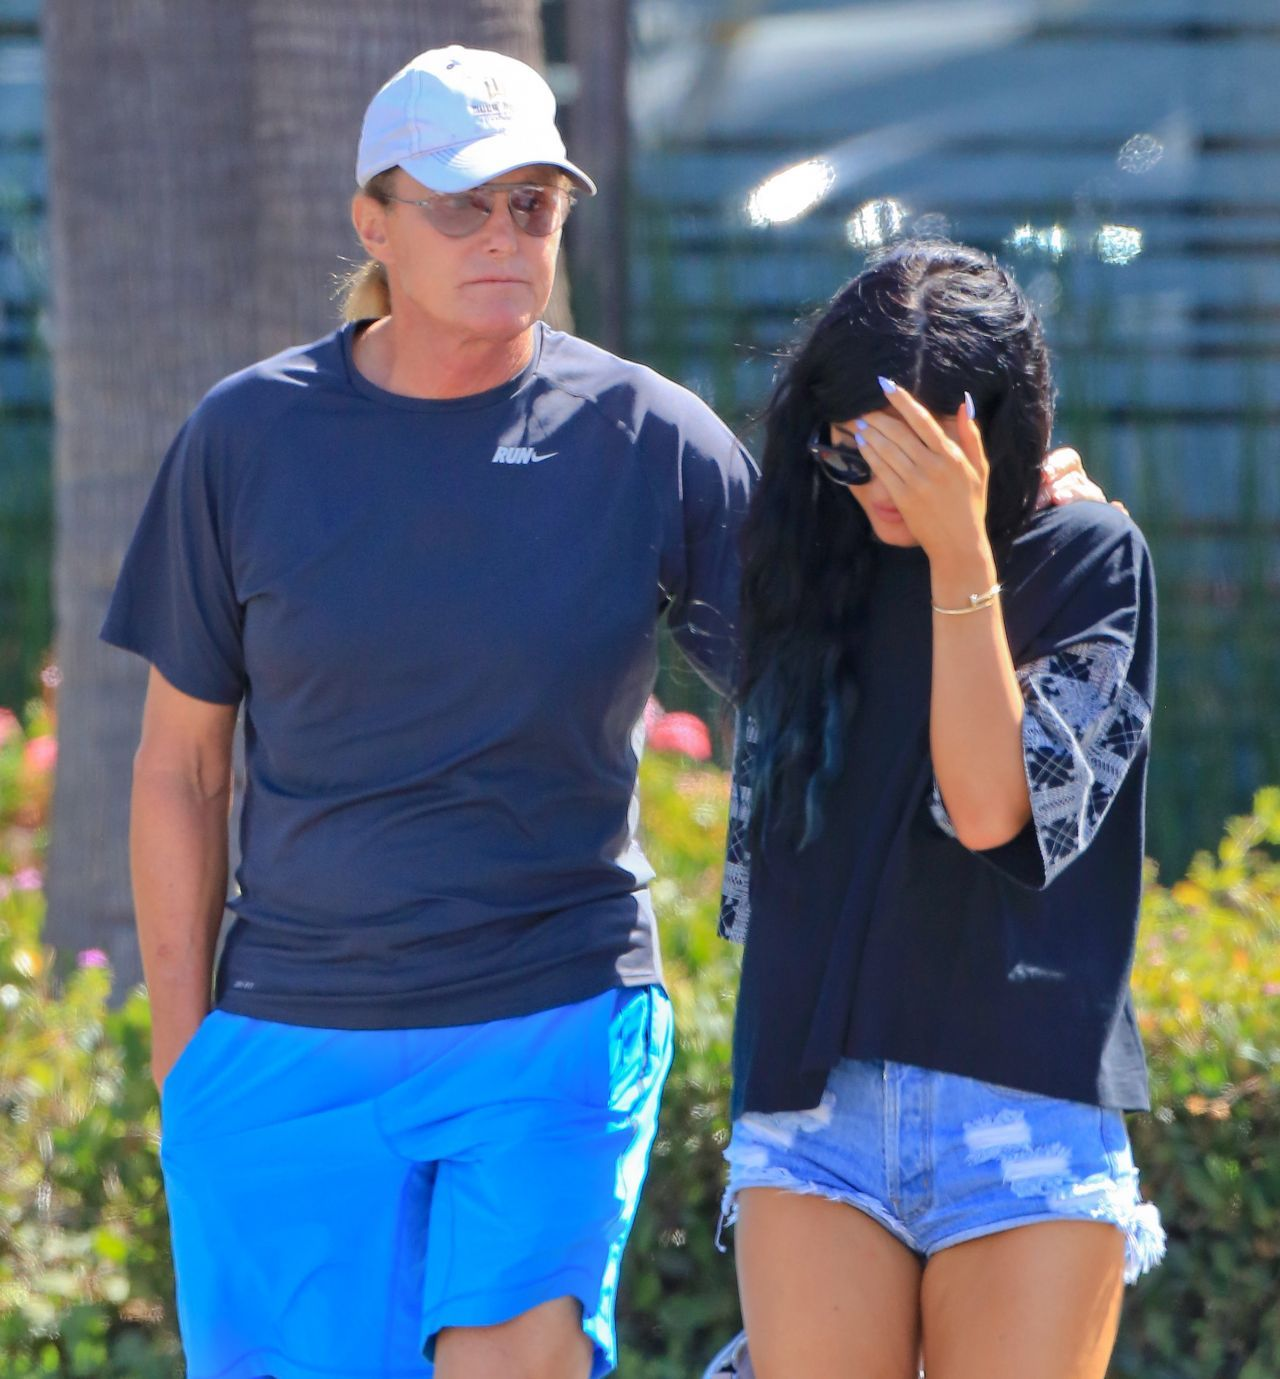 Kylie jenner and bruce jenner out in west hollywood september 2014 2